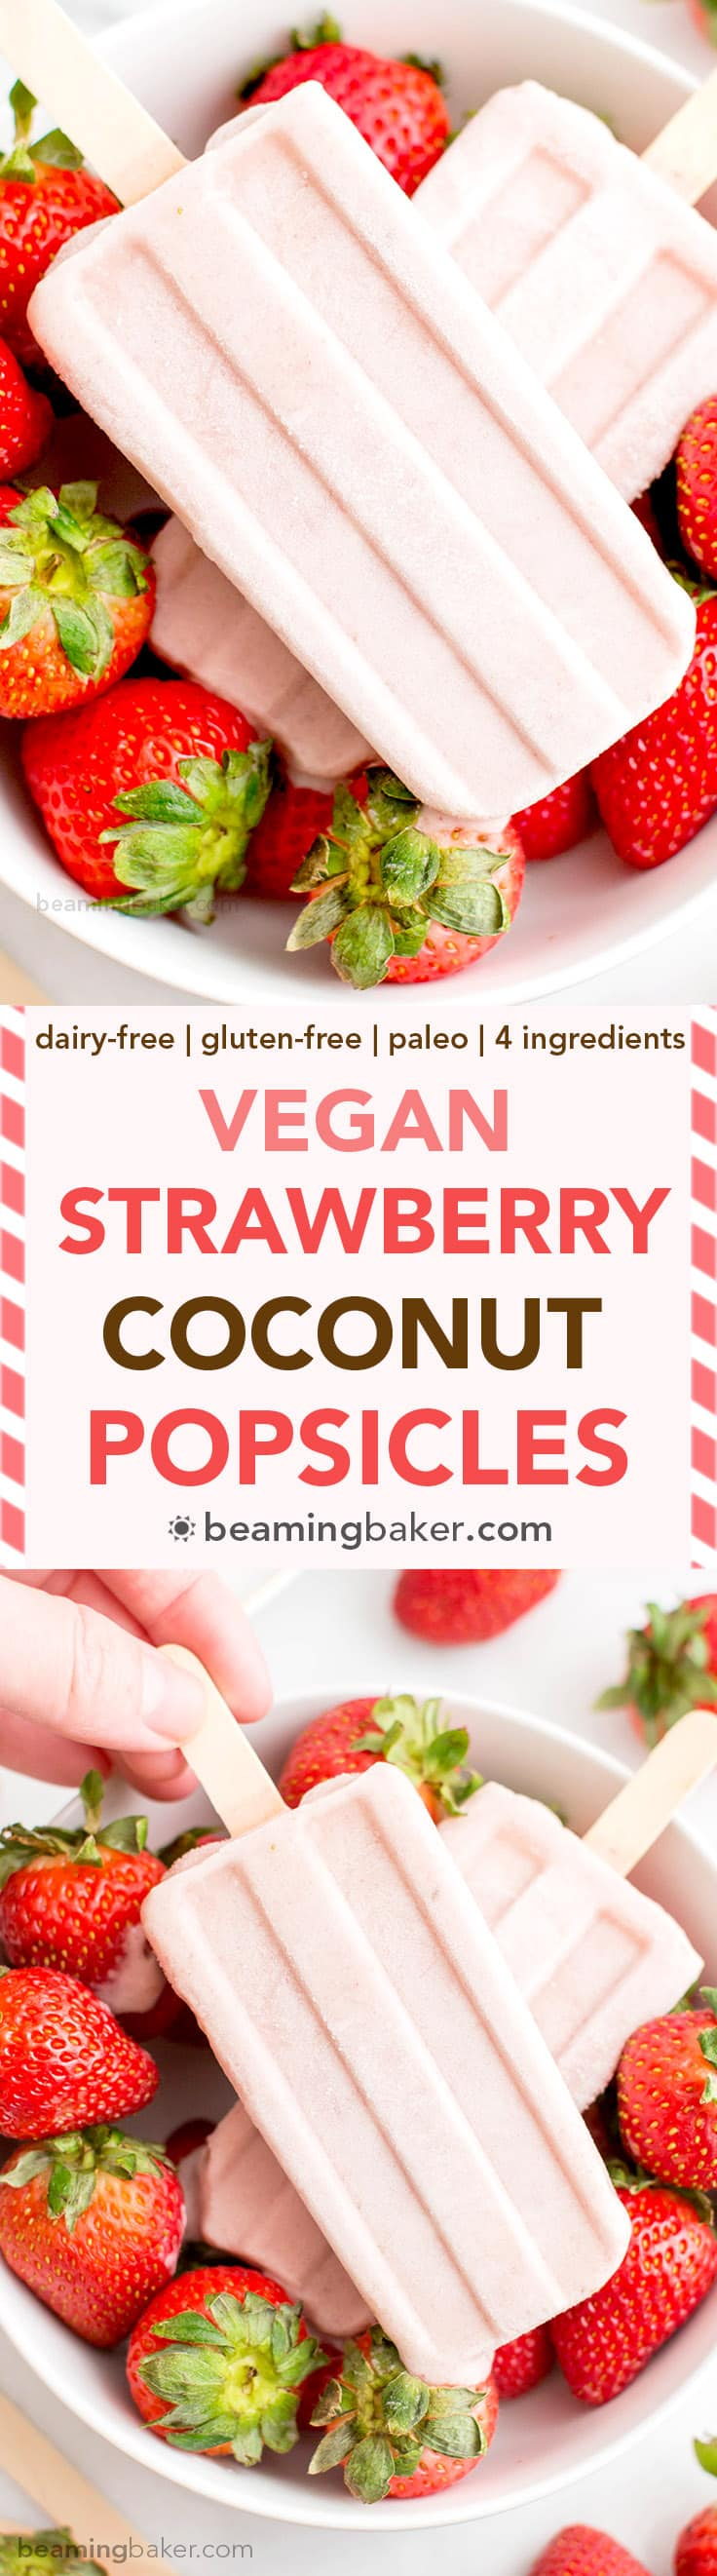 Vegan Strawberry Coconut Popsicles (V, GF, DF): a 4 ingredient, plant-based recipe for creamy, refreshing popsicles bursting with strawberry and coconut flavor. #Vegan #DairyFree #Paleo #GlutenFree | BeamingBaker.com